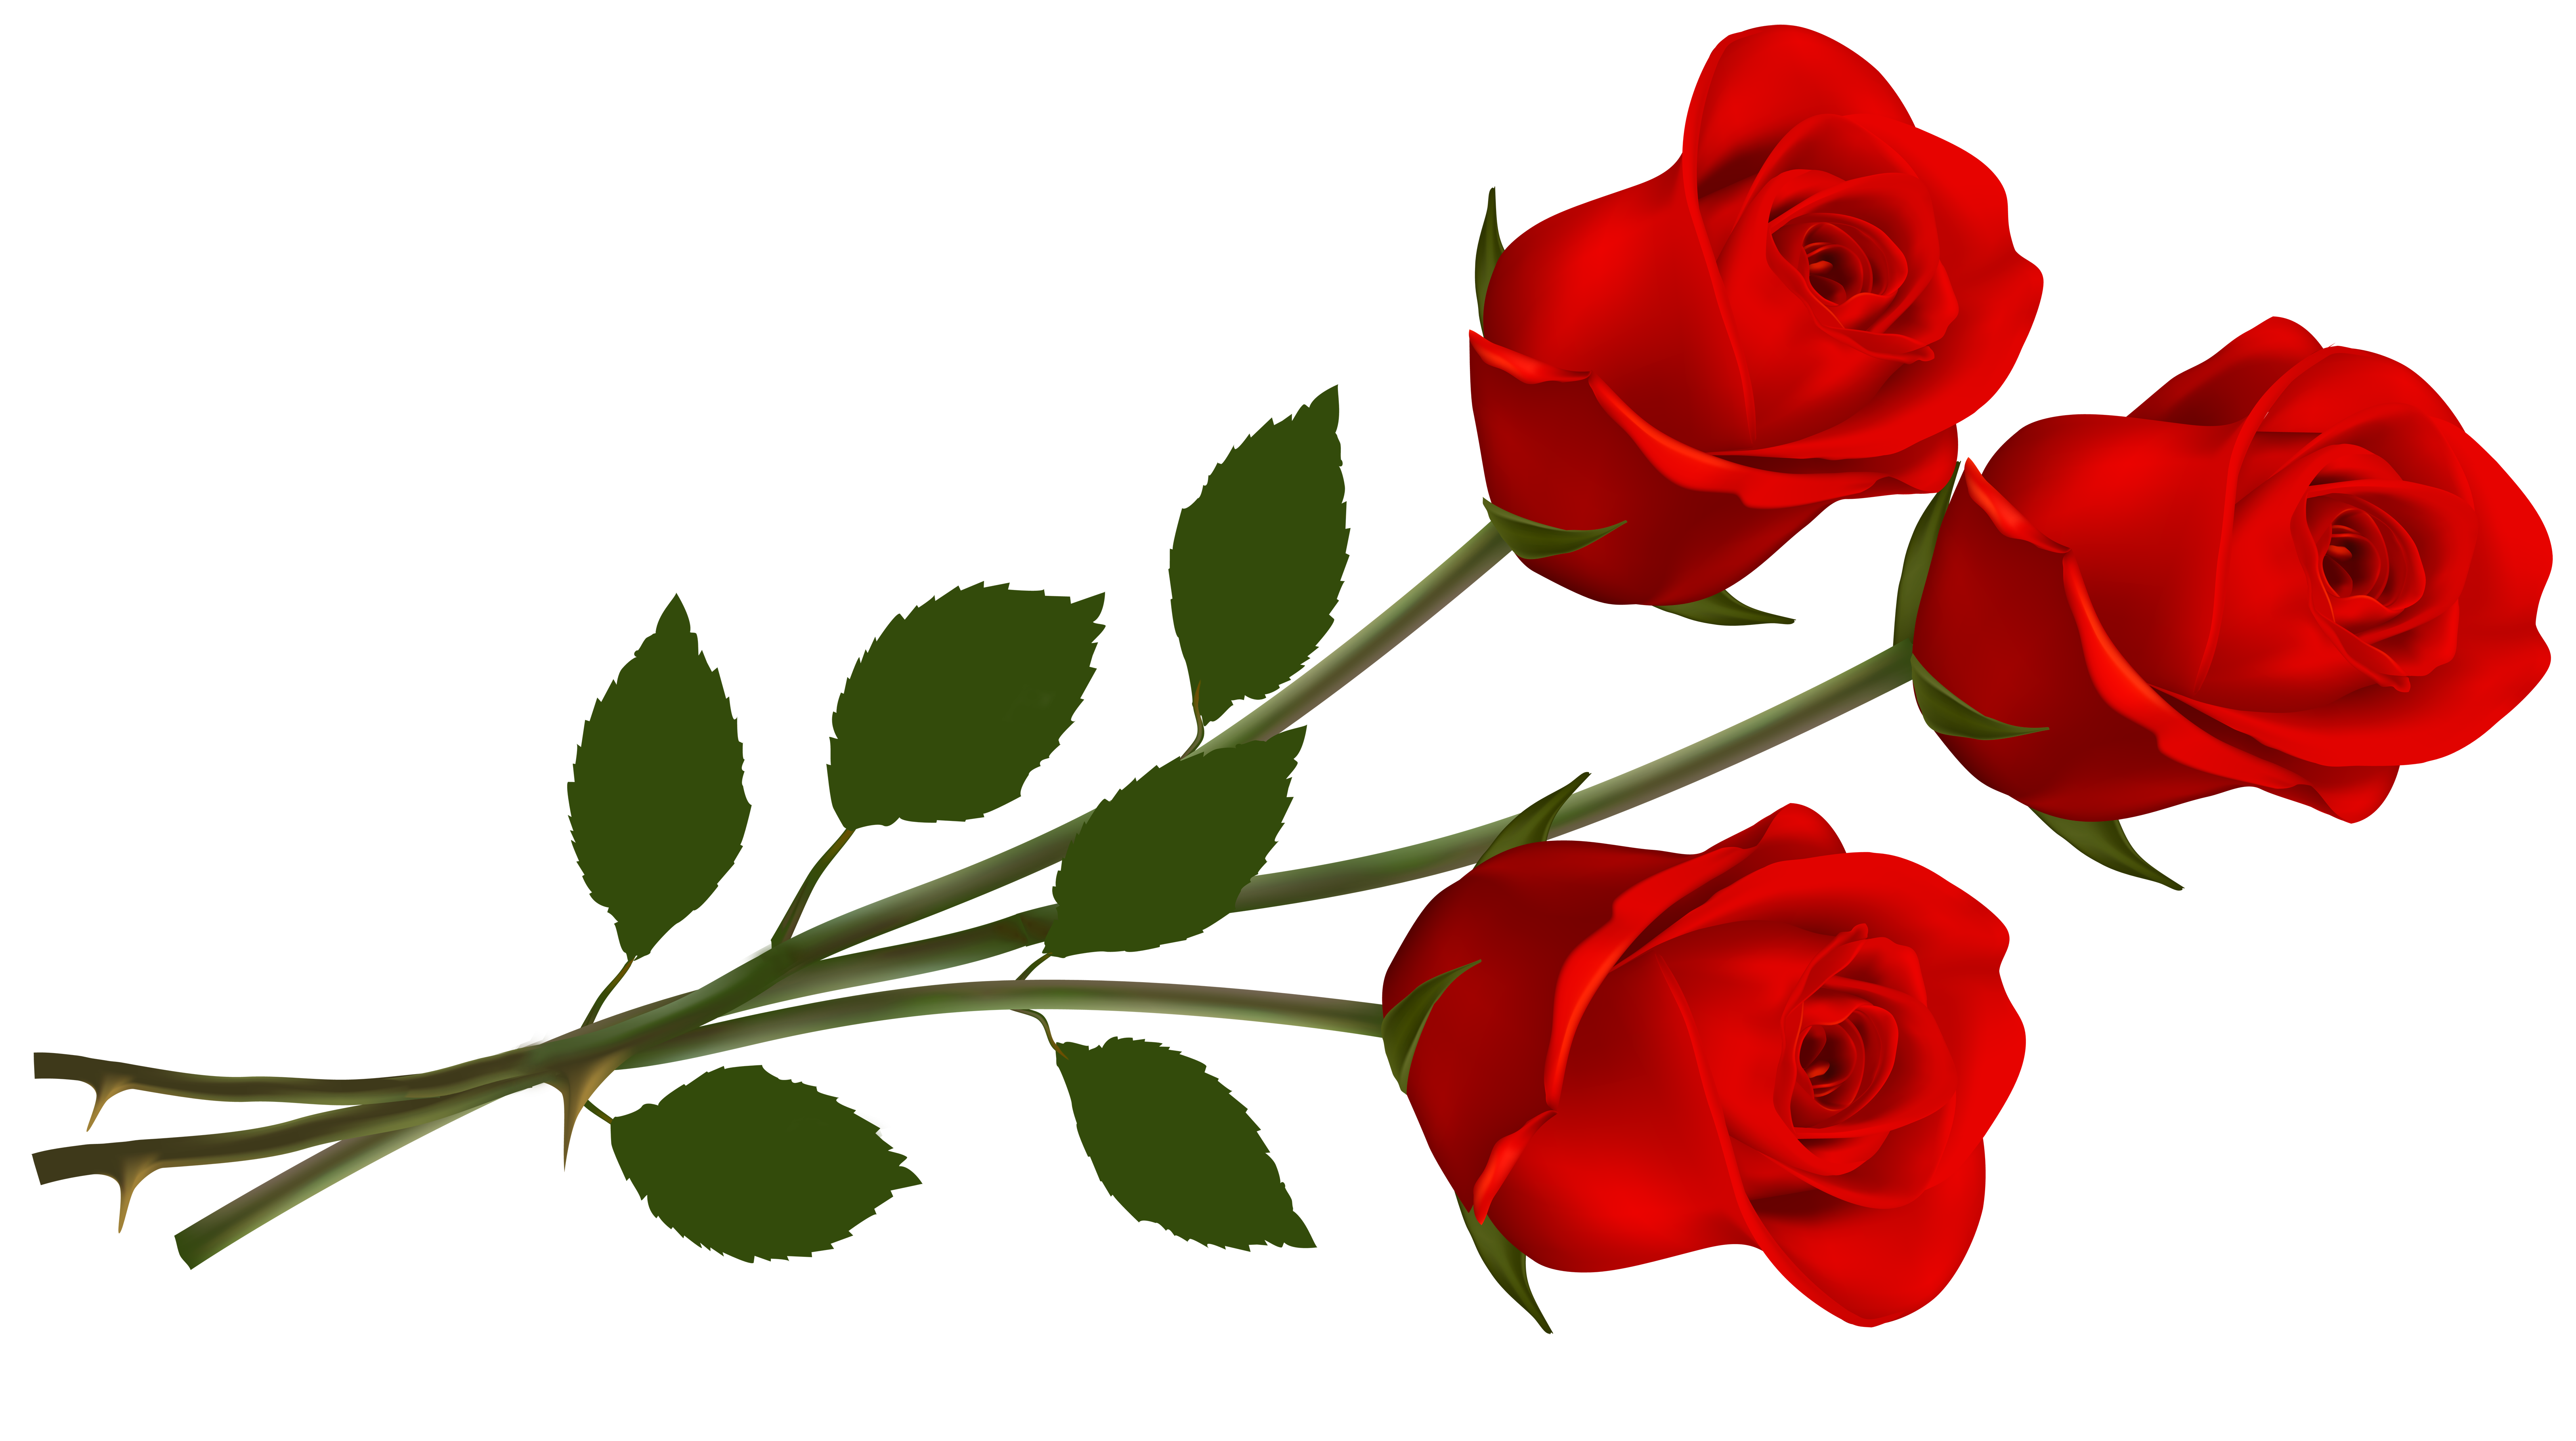 6500x3637 Clip Art Red Rose Roses Red Roses, Flowers And Gardens